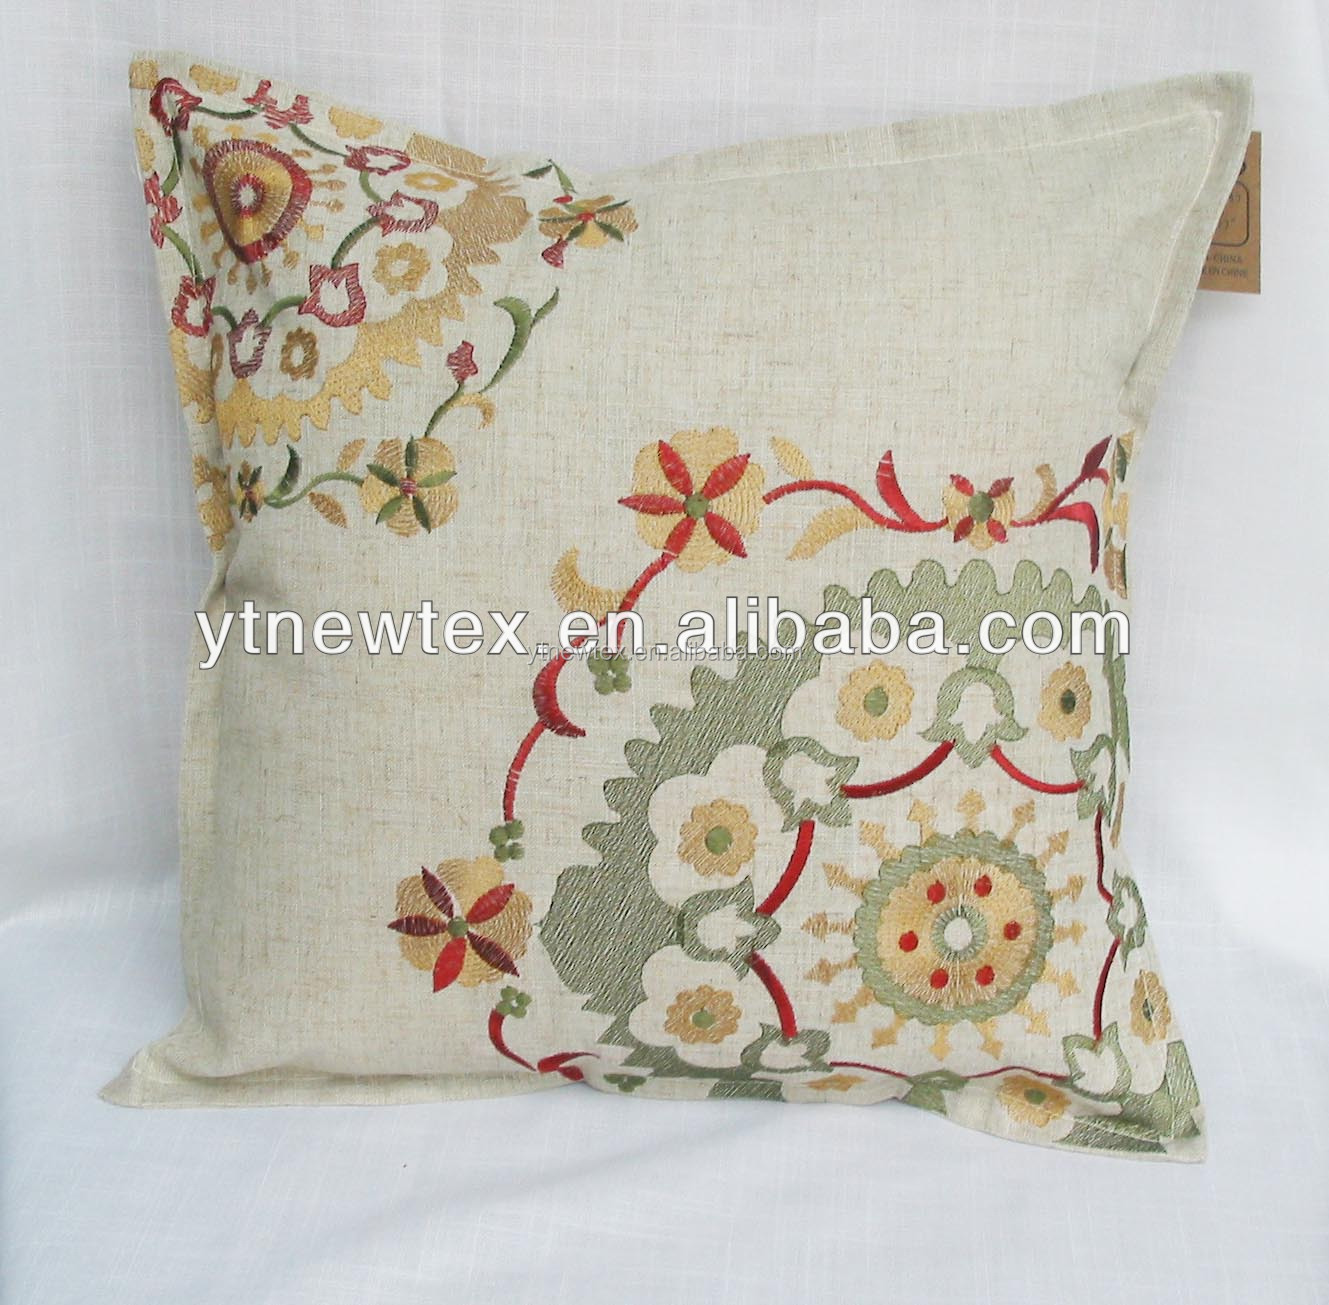 Ribbon embroidery bedspread designs - Floral Ribbon Embroidery Cushion Covers Hand Embroidery Design Floral Ribbon Embroidery Cushion Covers Hand Embroidery Design Suppliers And Manufacturers